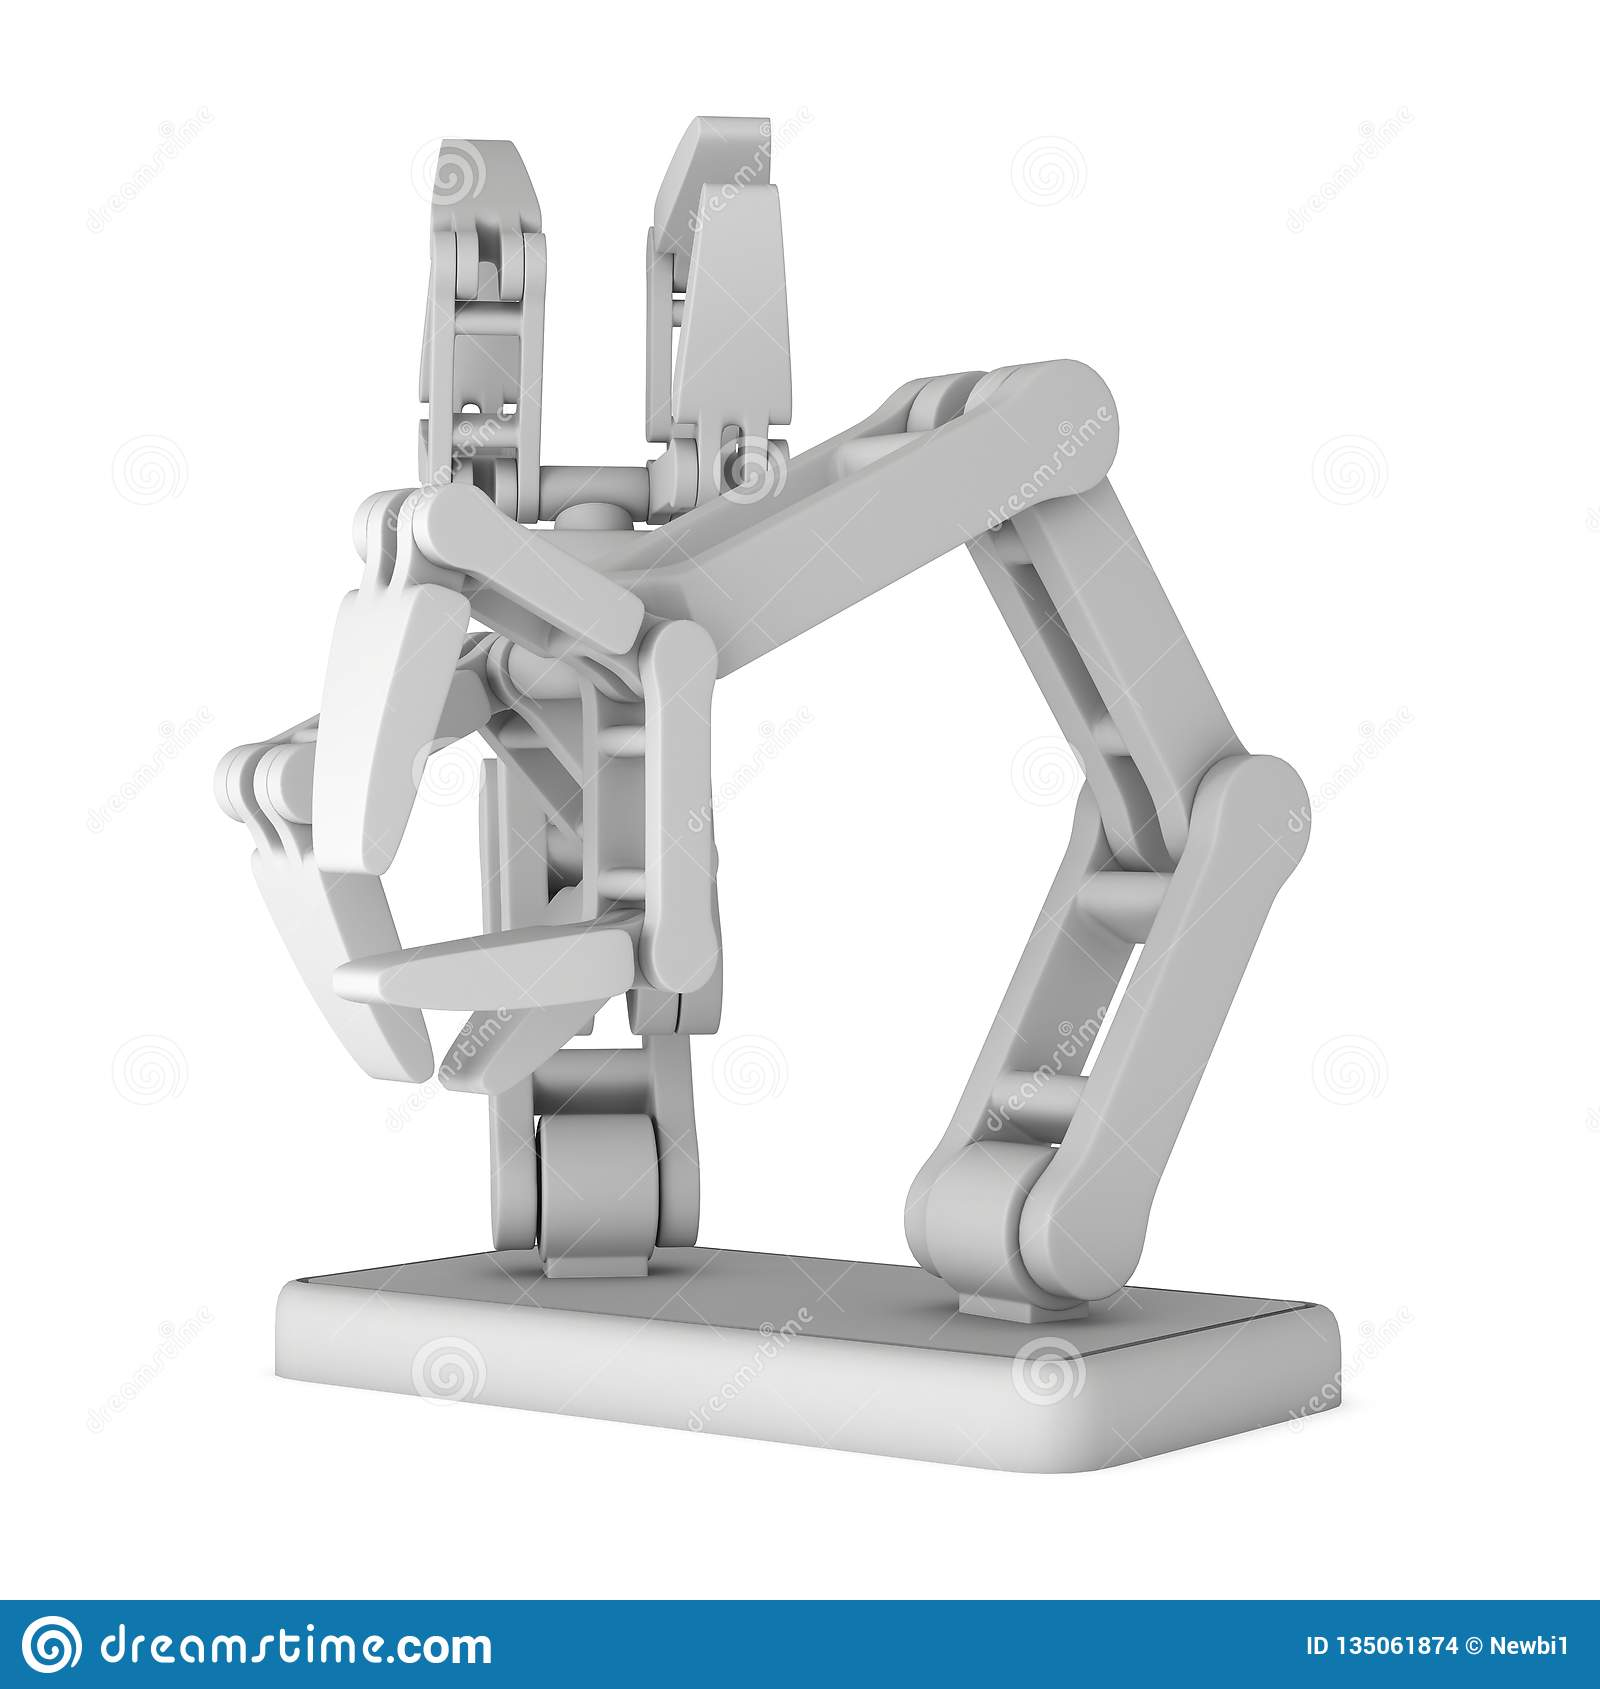 Robotic arm 3d stock illustration  Illustration of object - 135061874